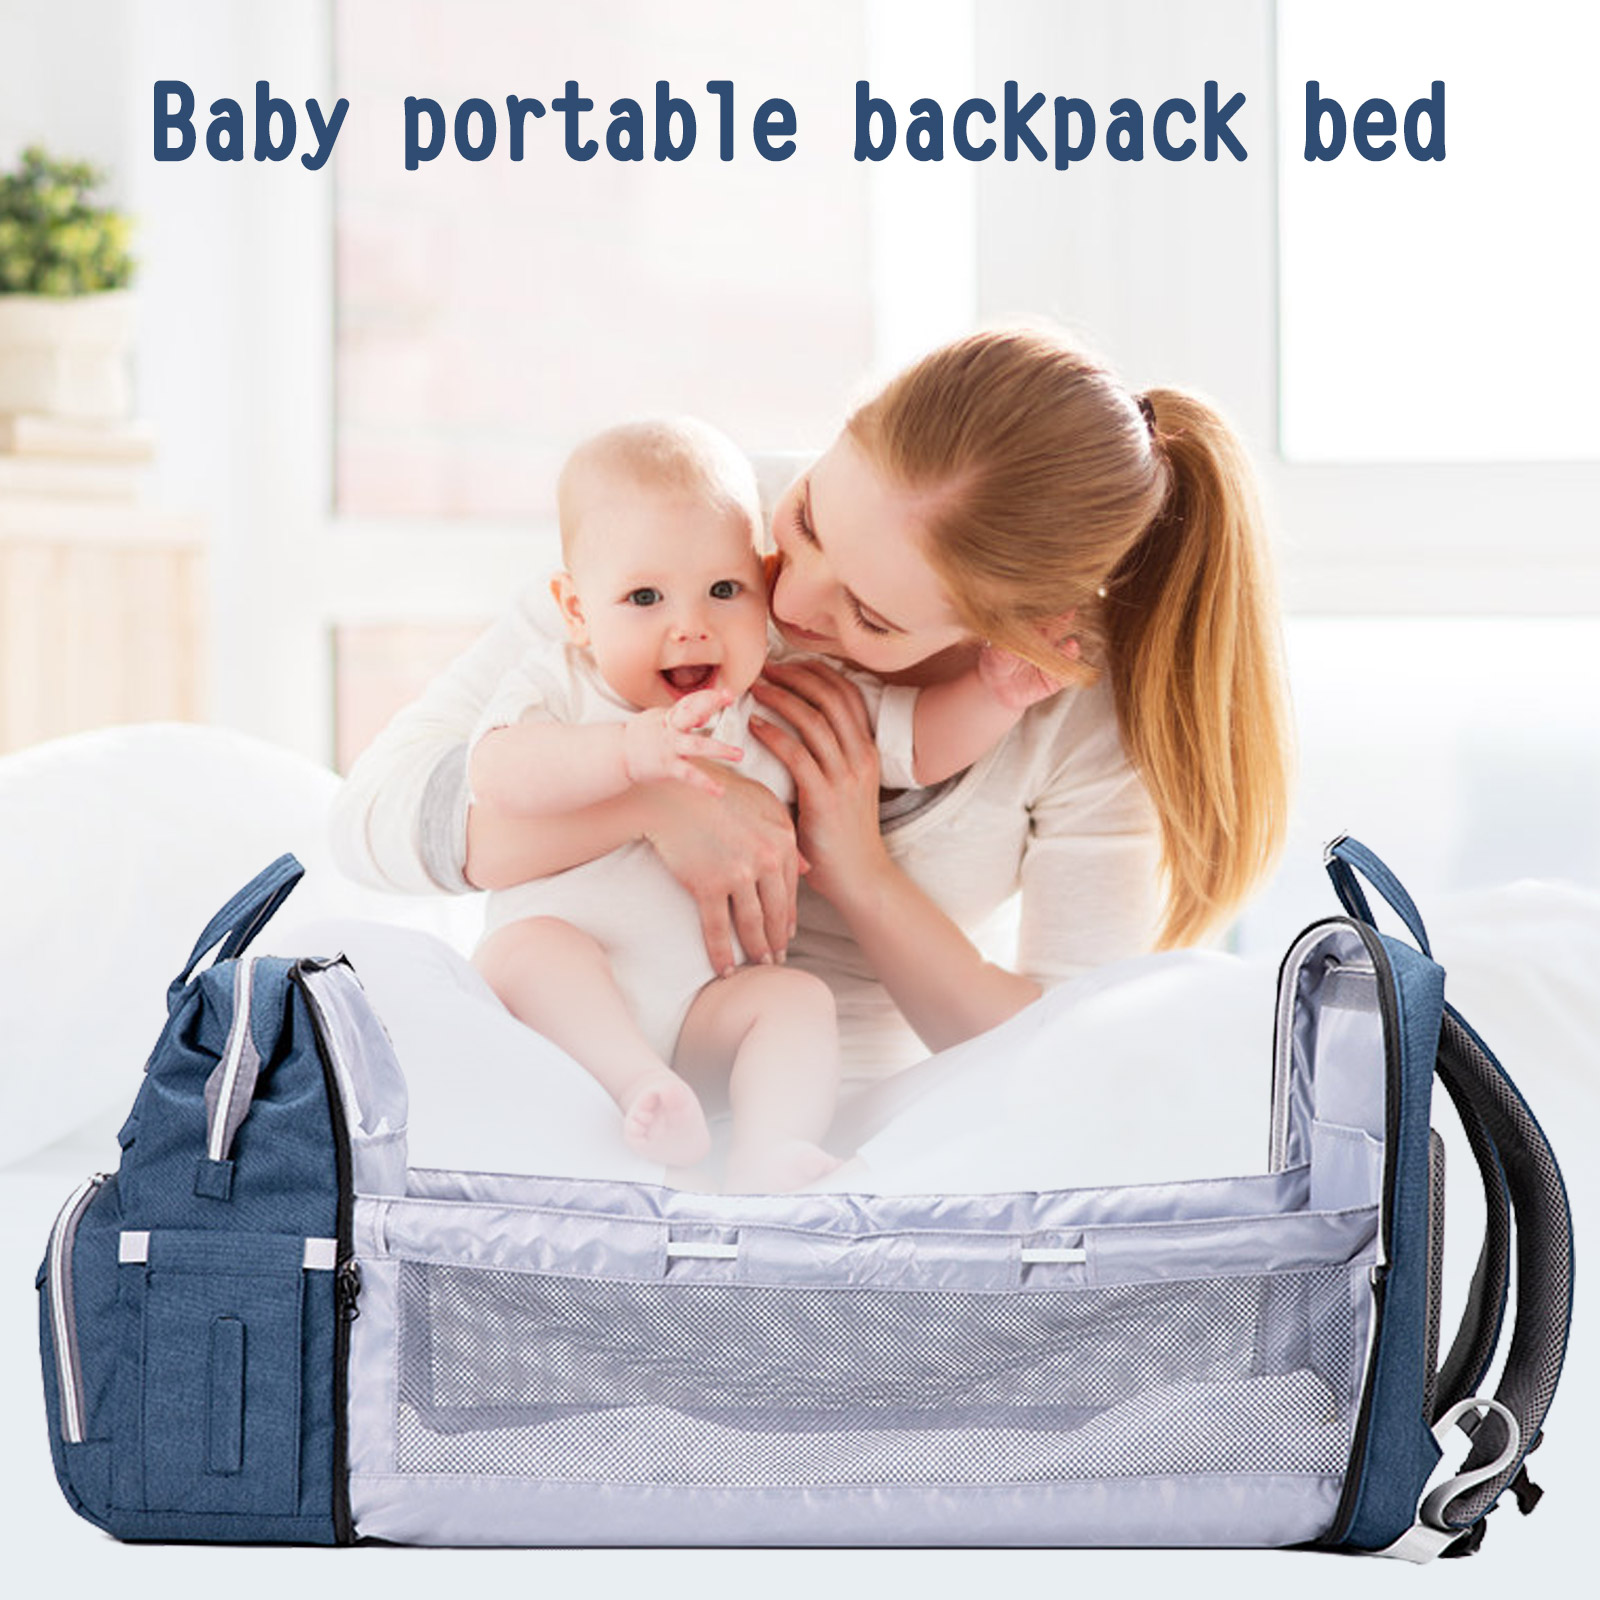 Multifunction Waterproof Mum Backpack Portable Large Capacity Diaper Bag with Changing Baby Bed Crib and Mosquito Net